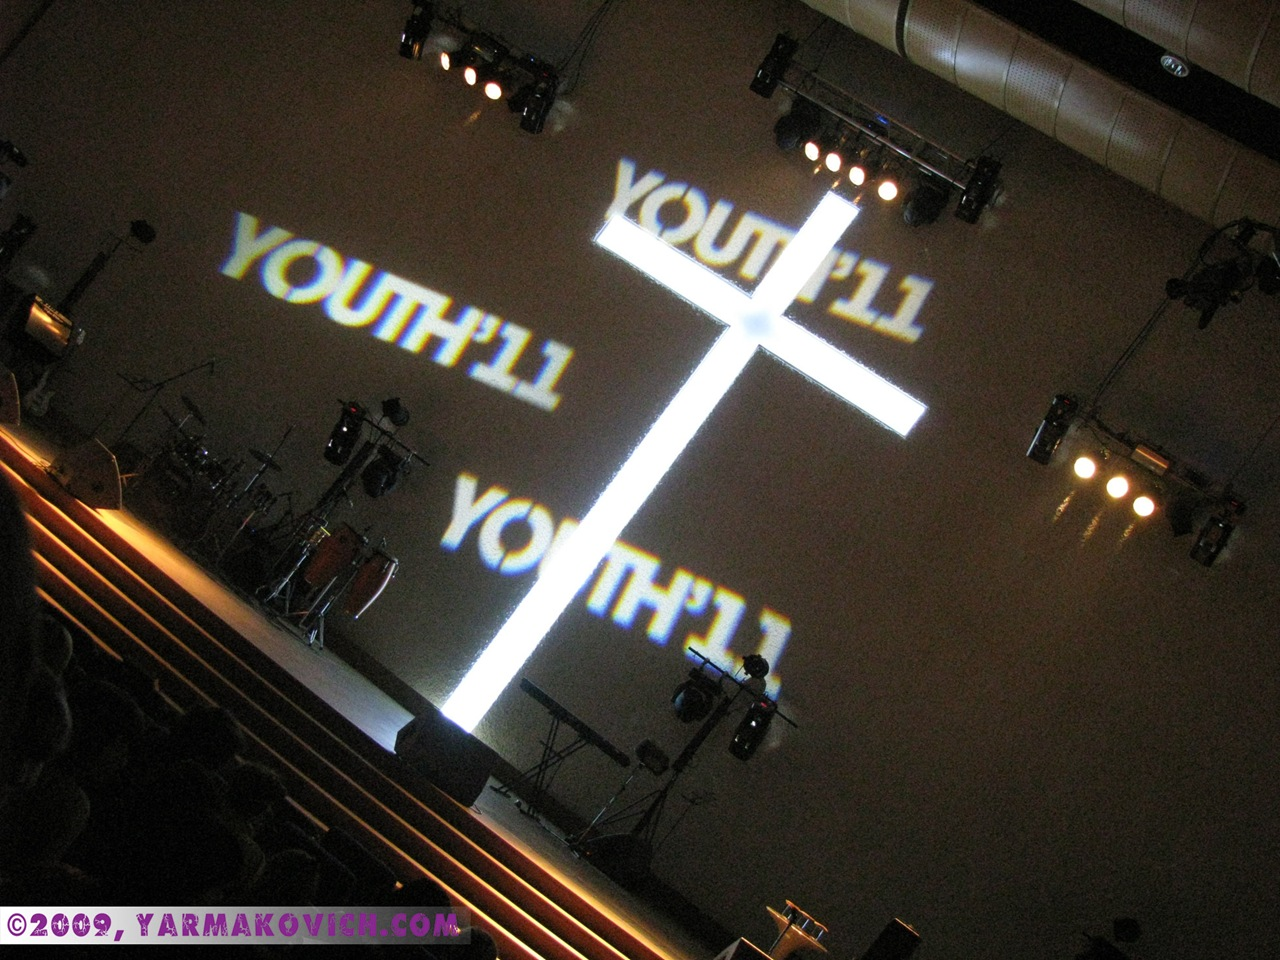 Youth'11